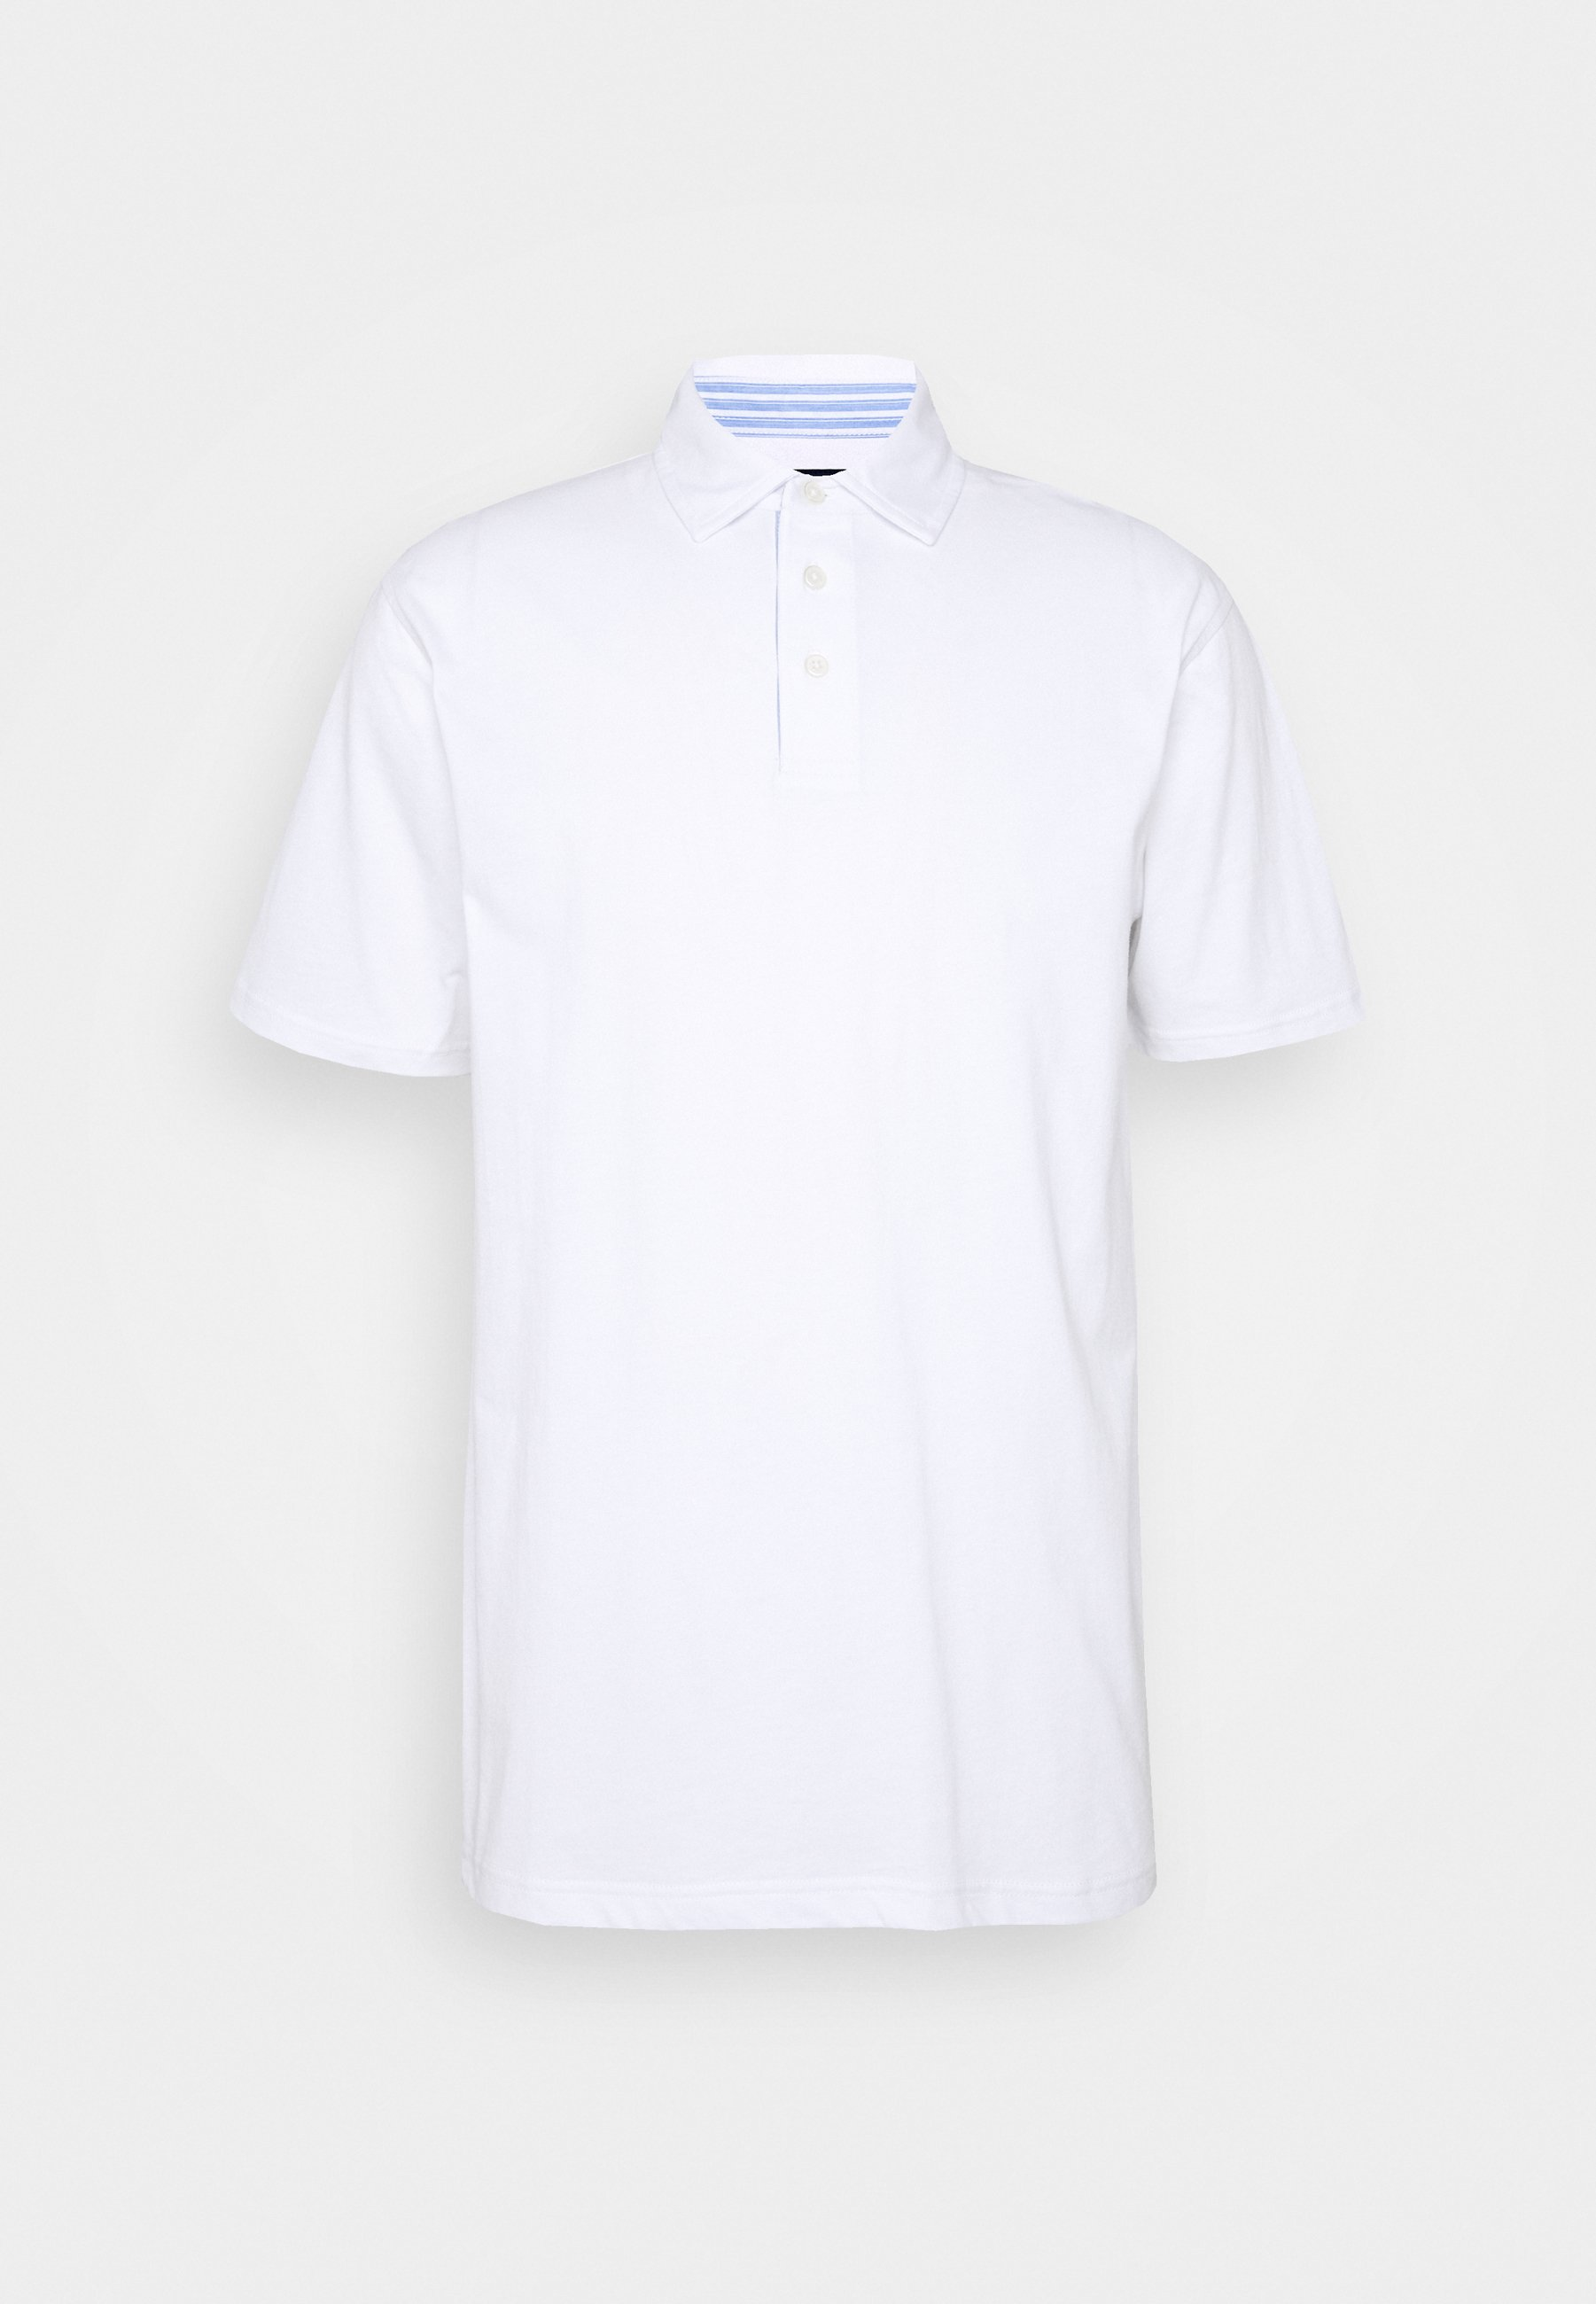 Hackett London Poloshirt - Navy